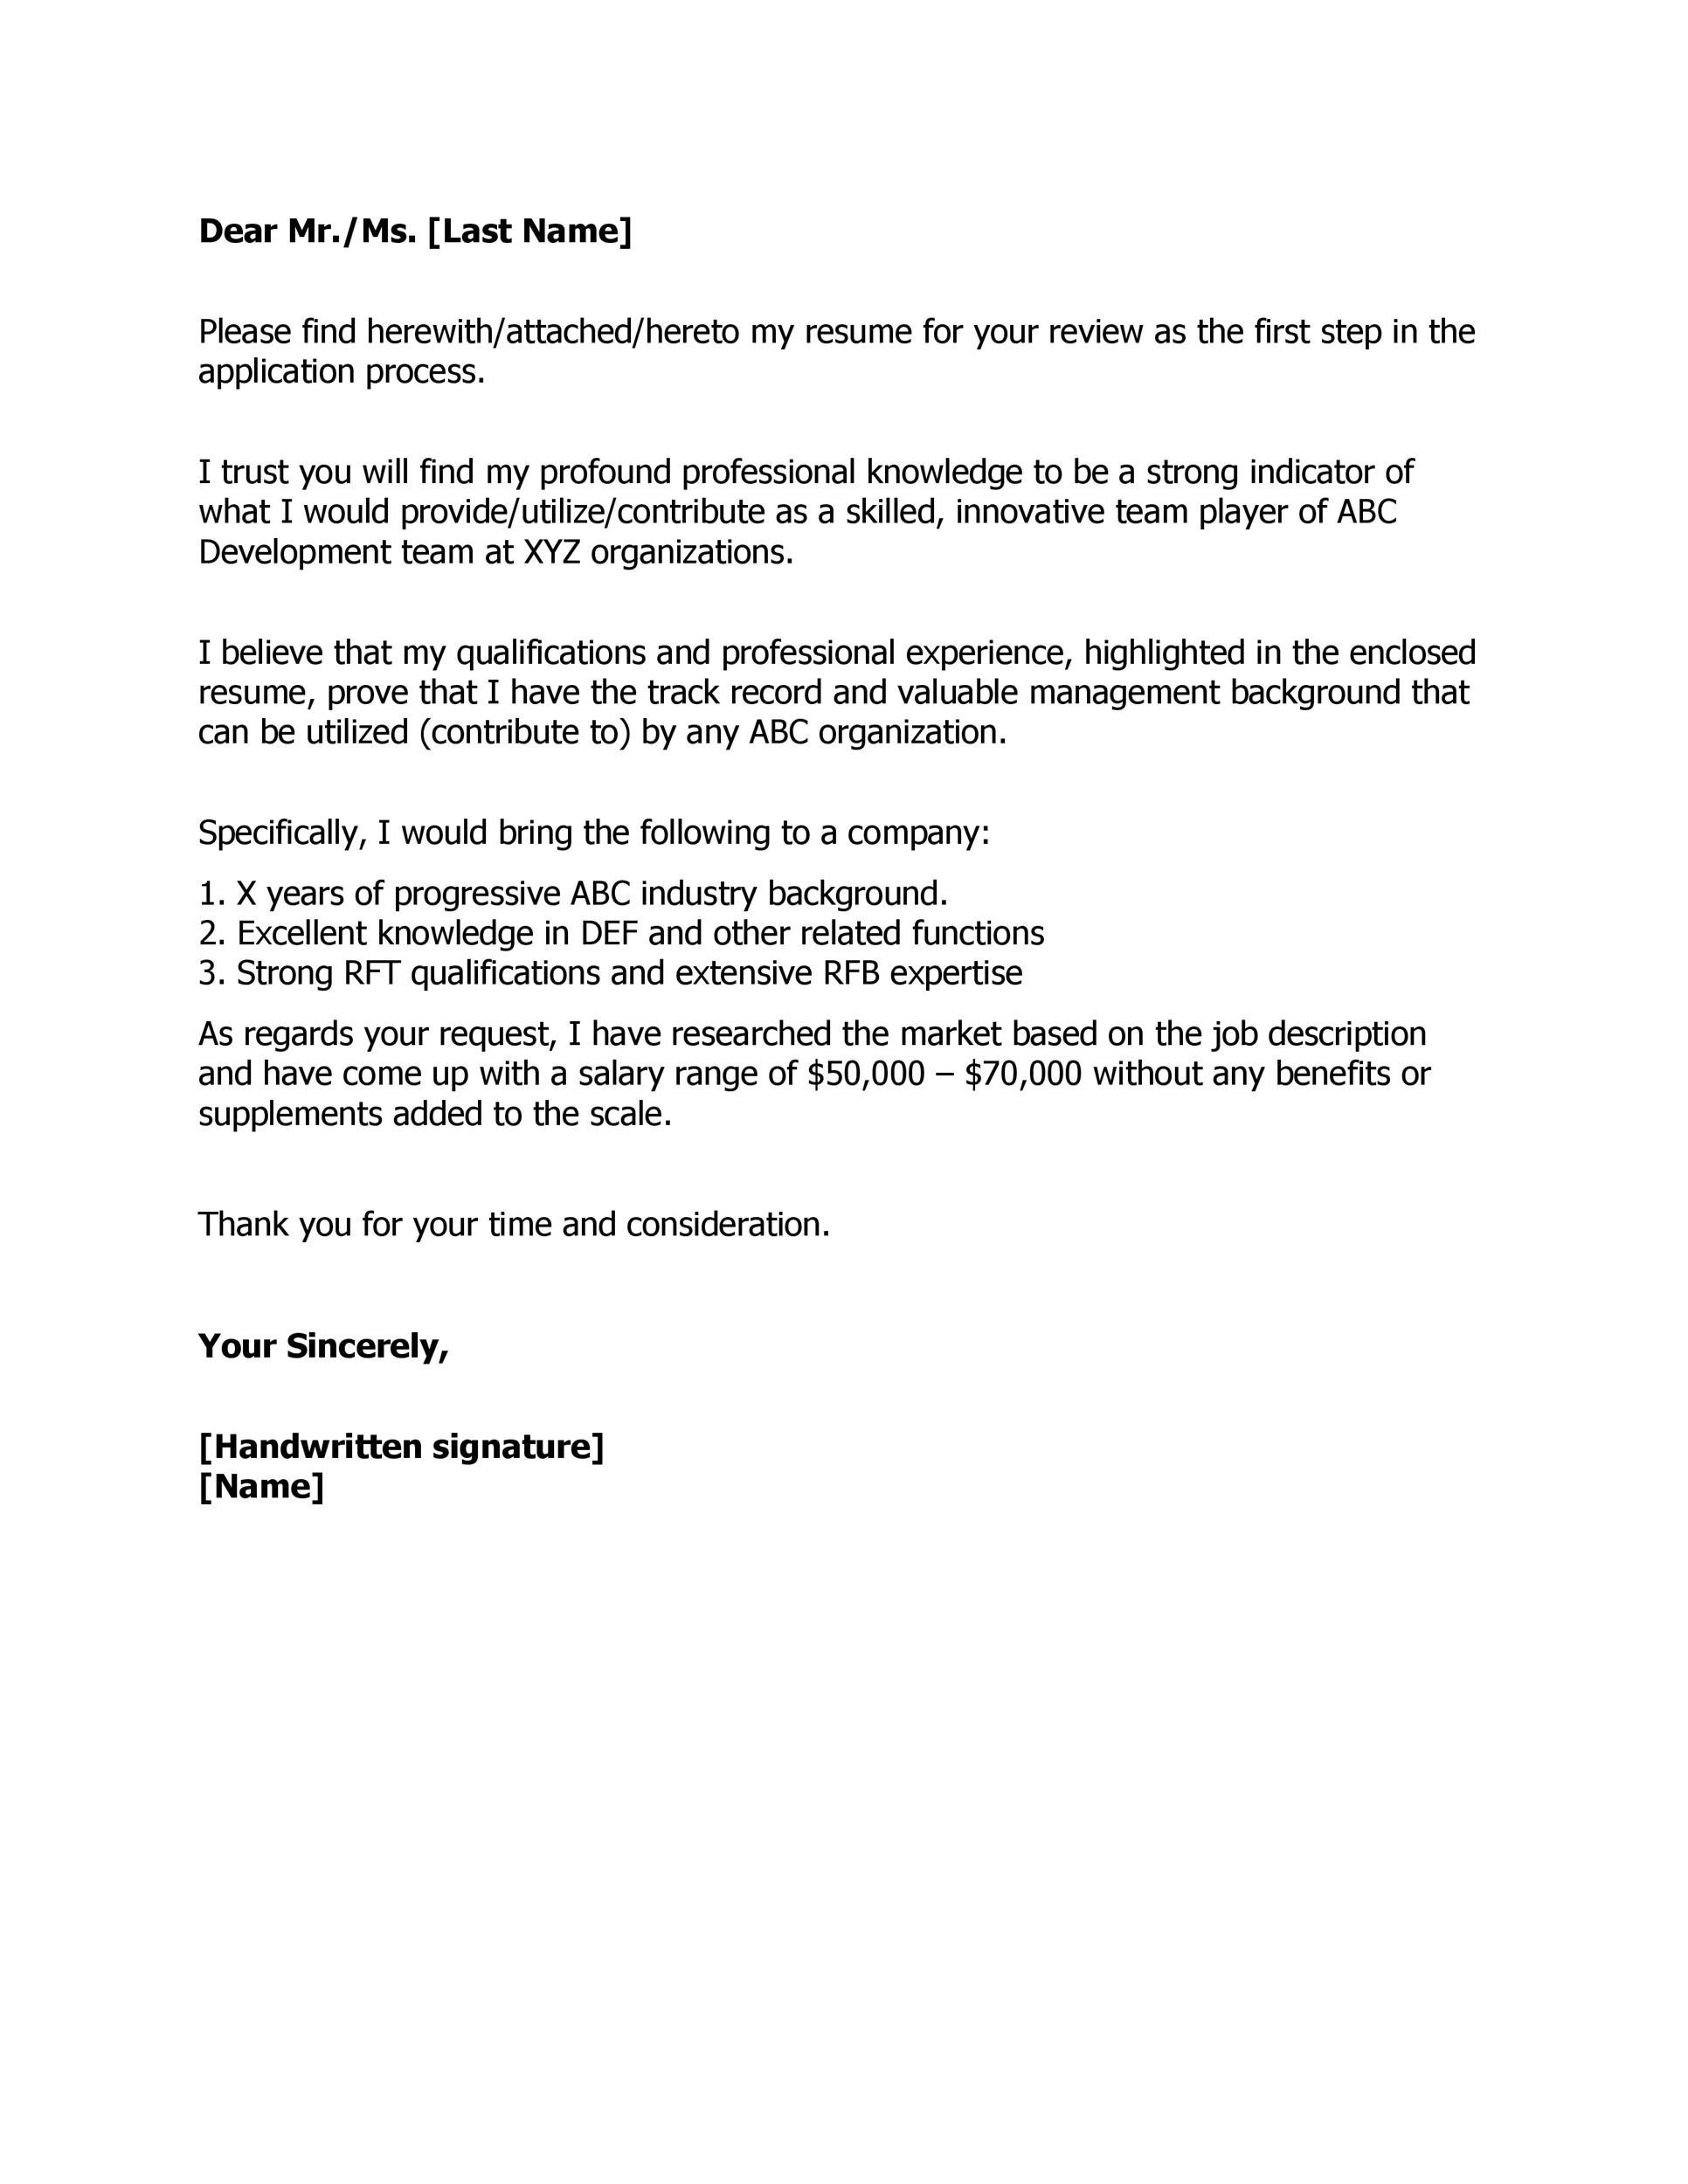 Sample Cover Letter With Salary Requirements But Negotiable